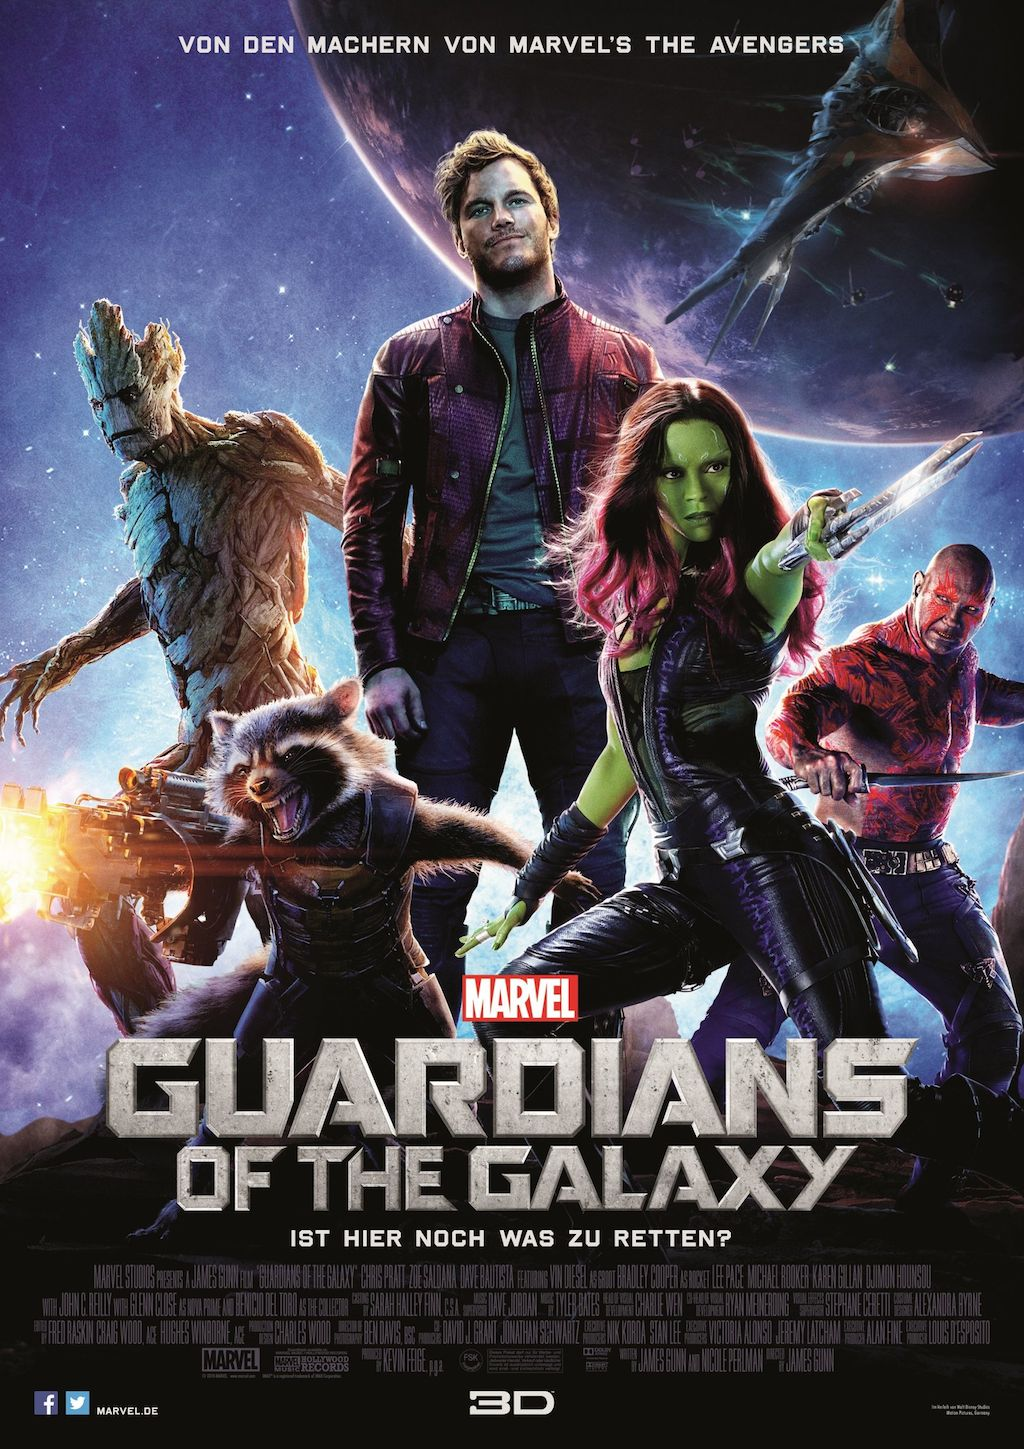 Guardians of the galaxy 2014 imdb 2016 2016 car release date